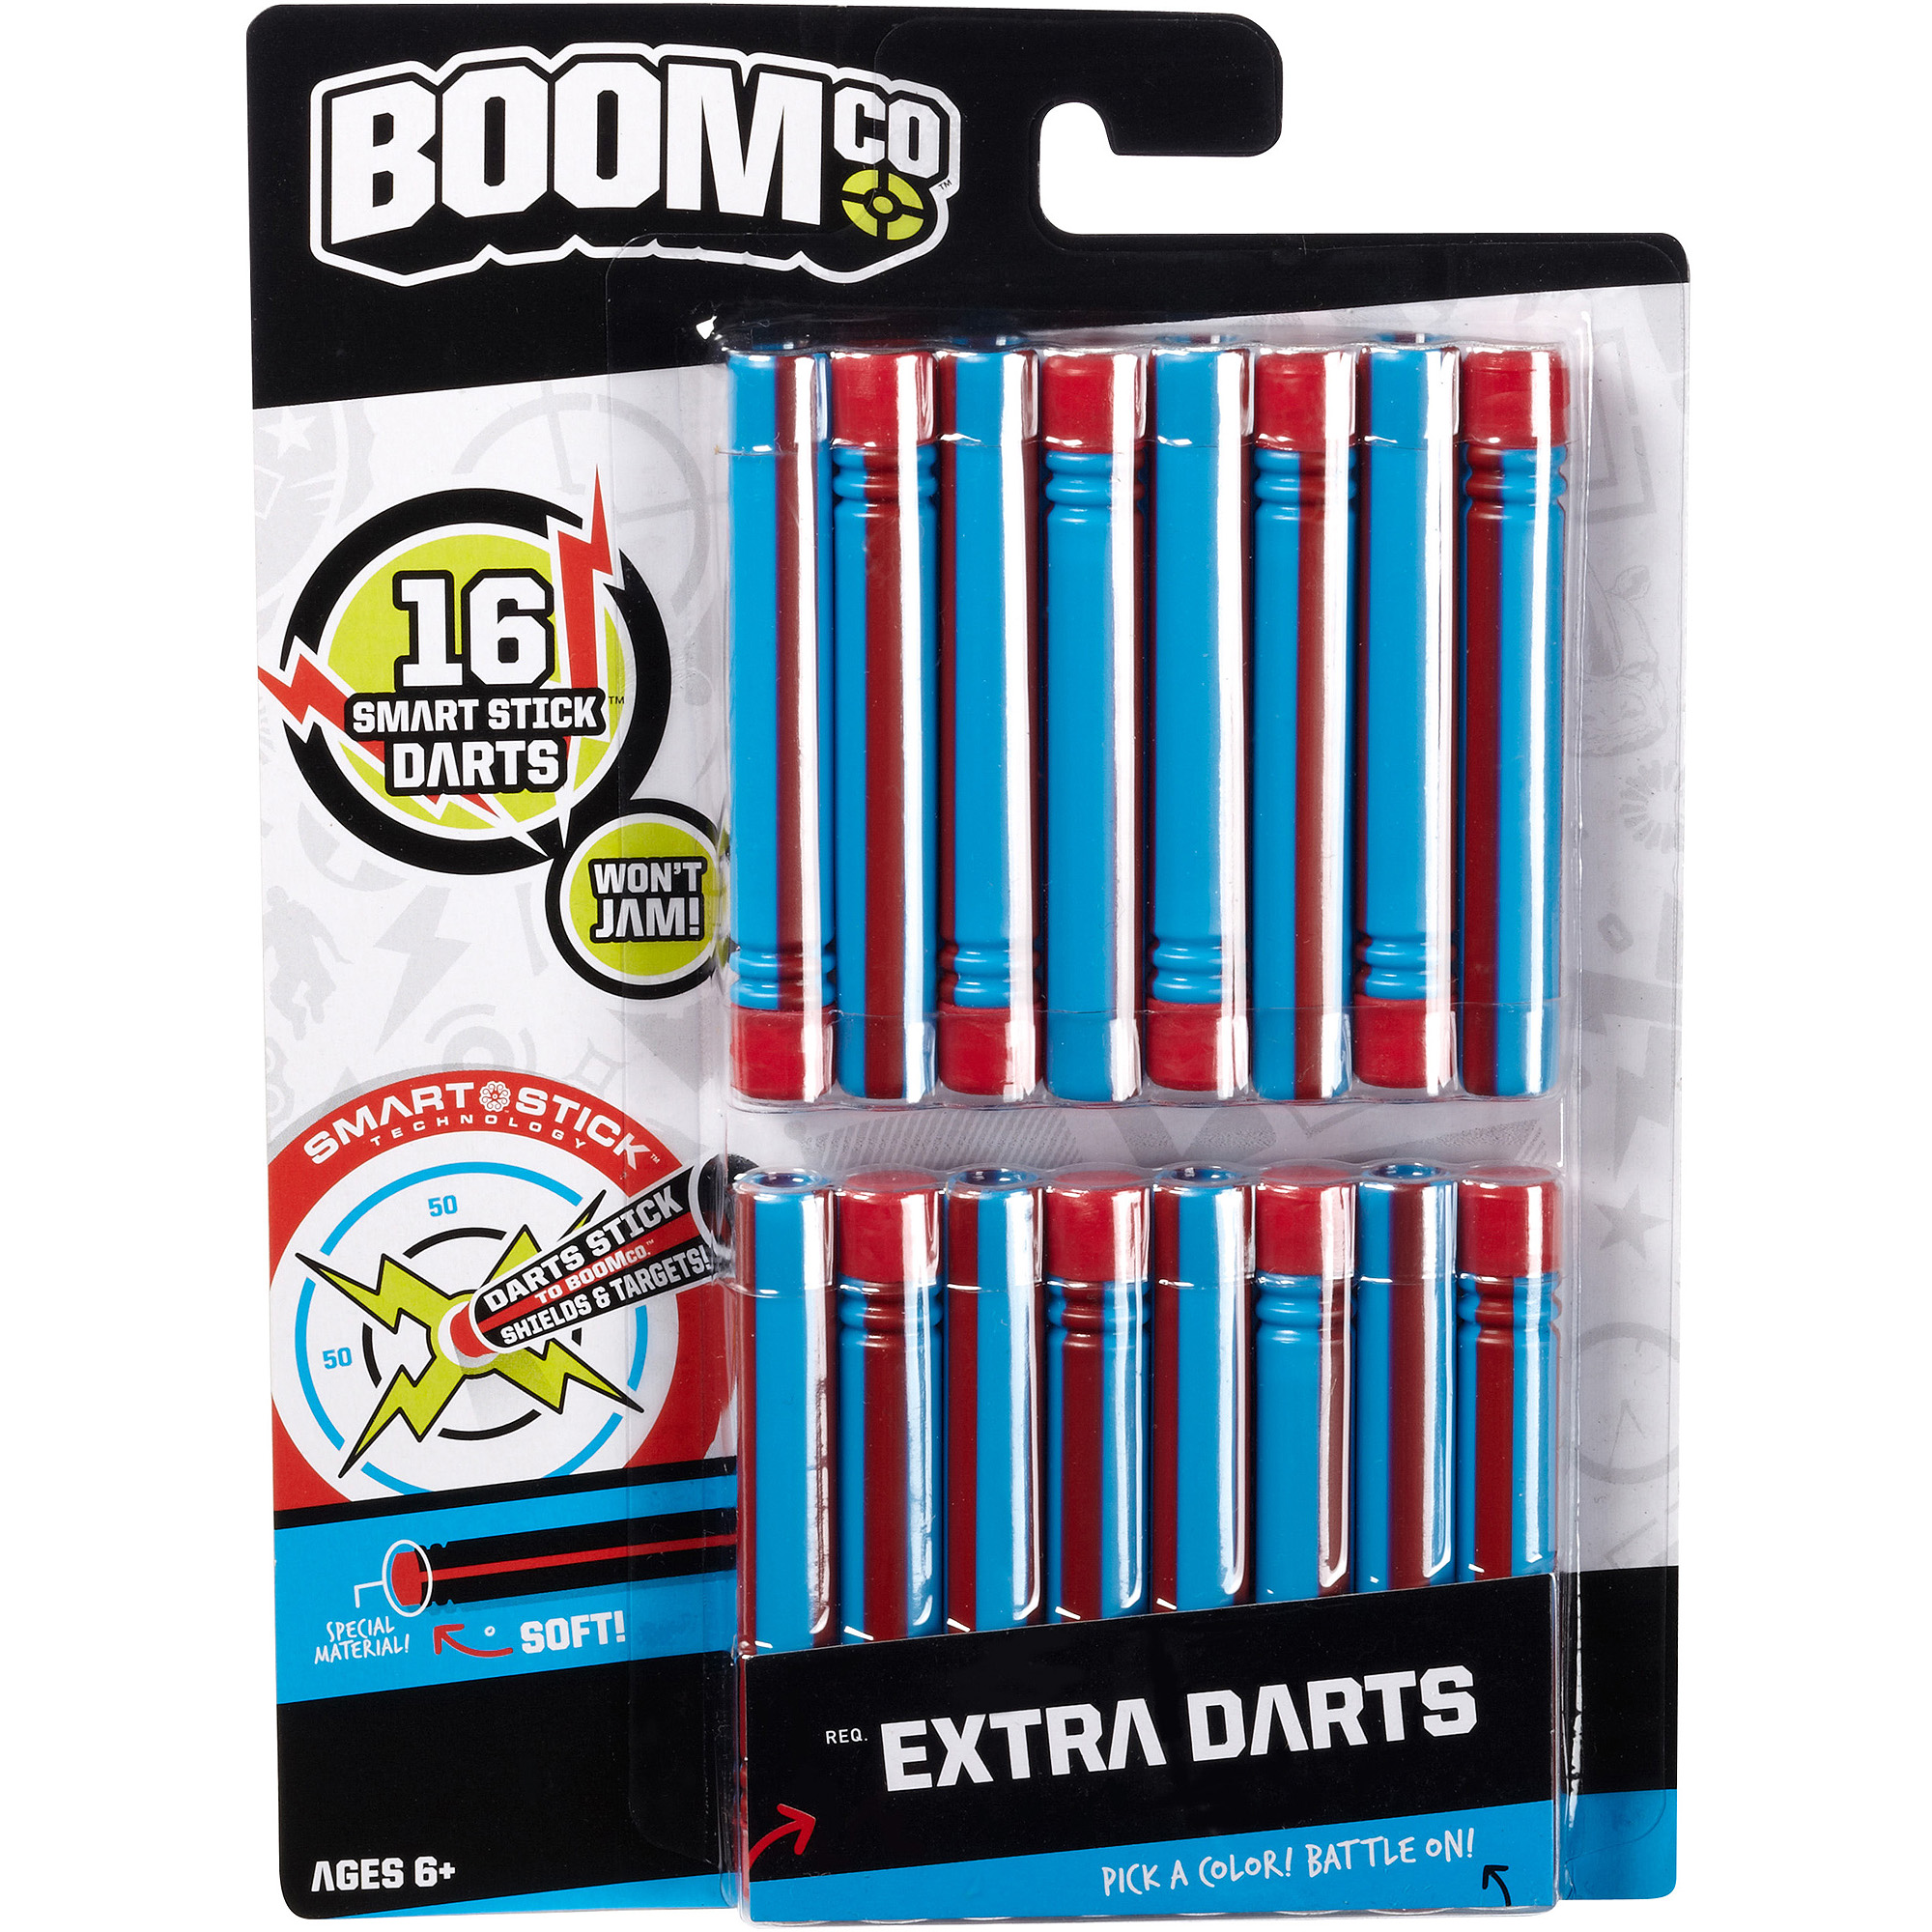 BOOMco. Dart, Blue with Red Stripe, 16-Pack